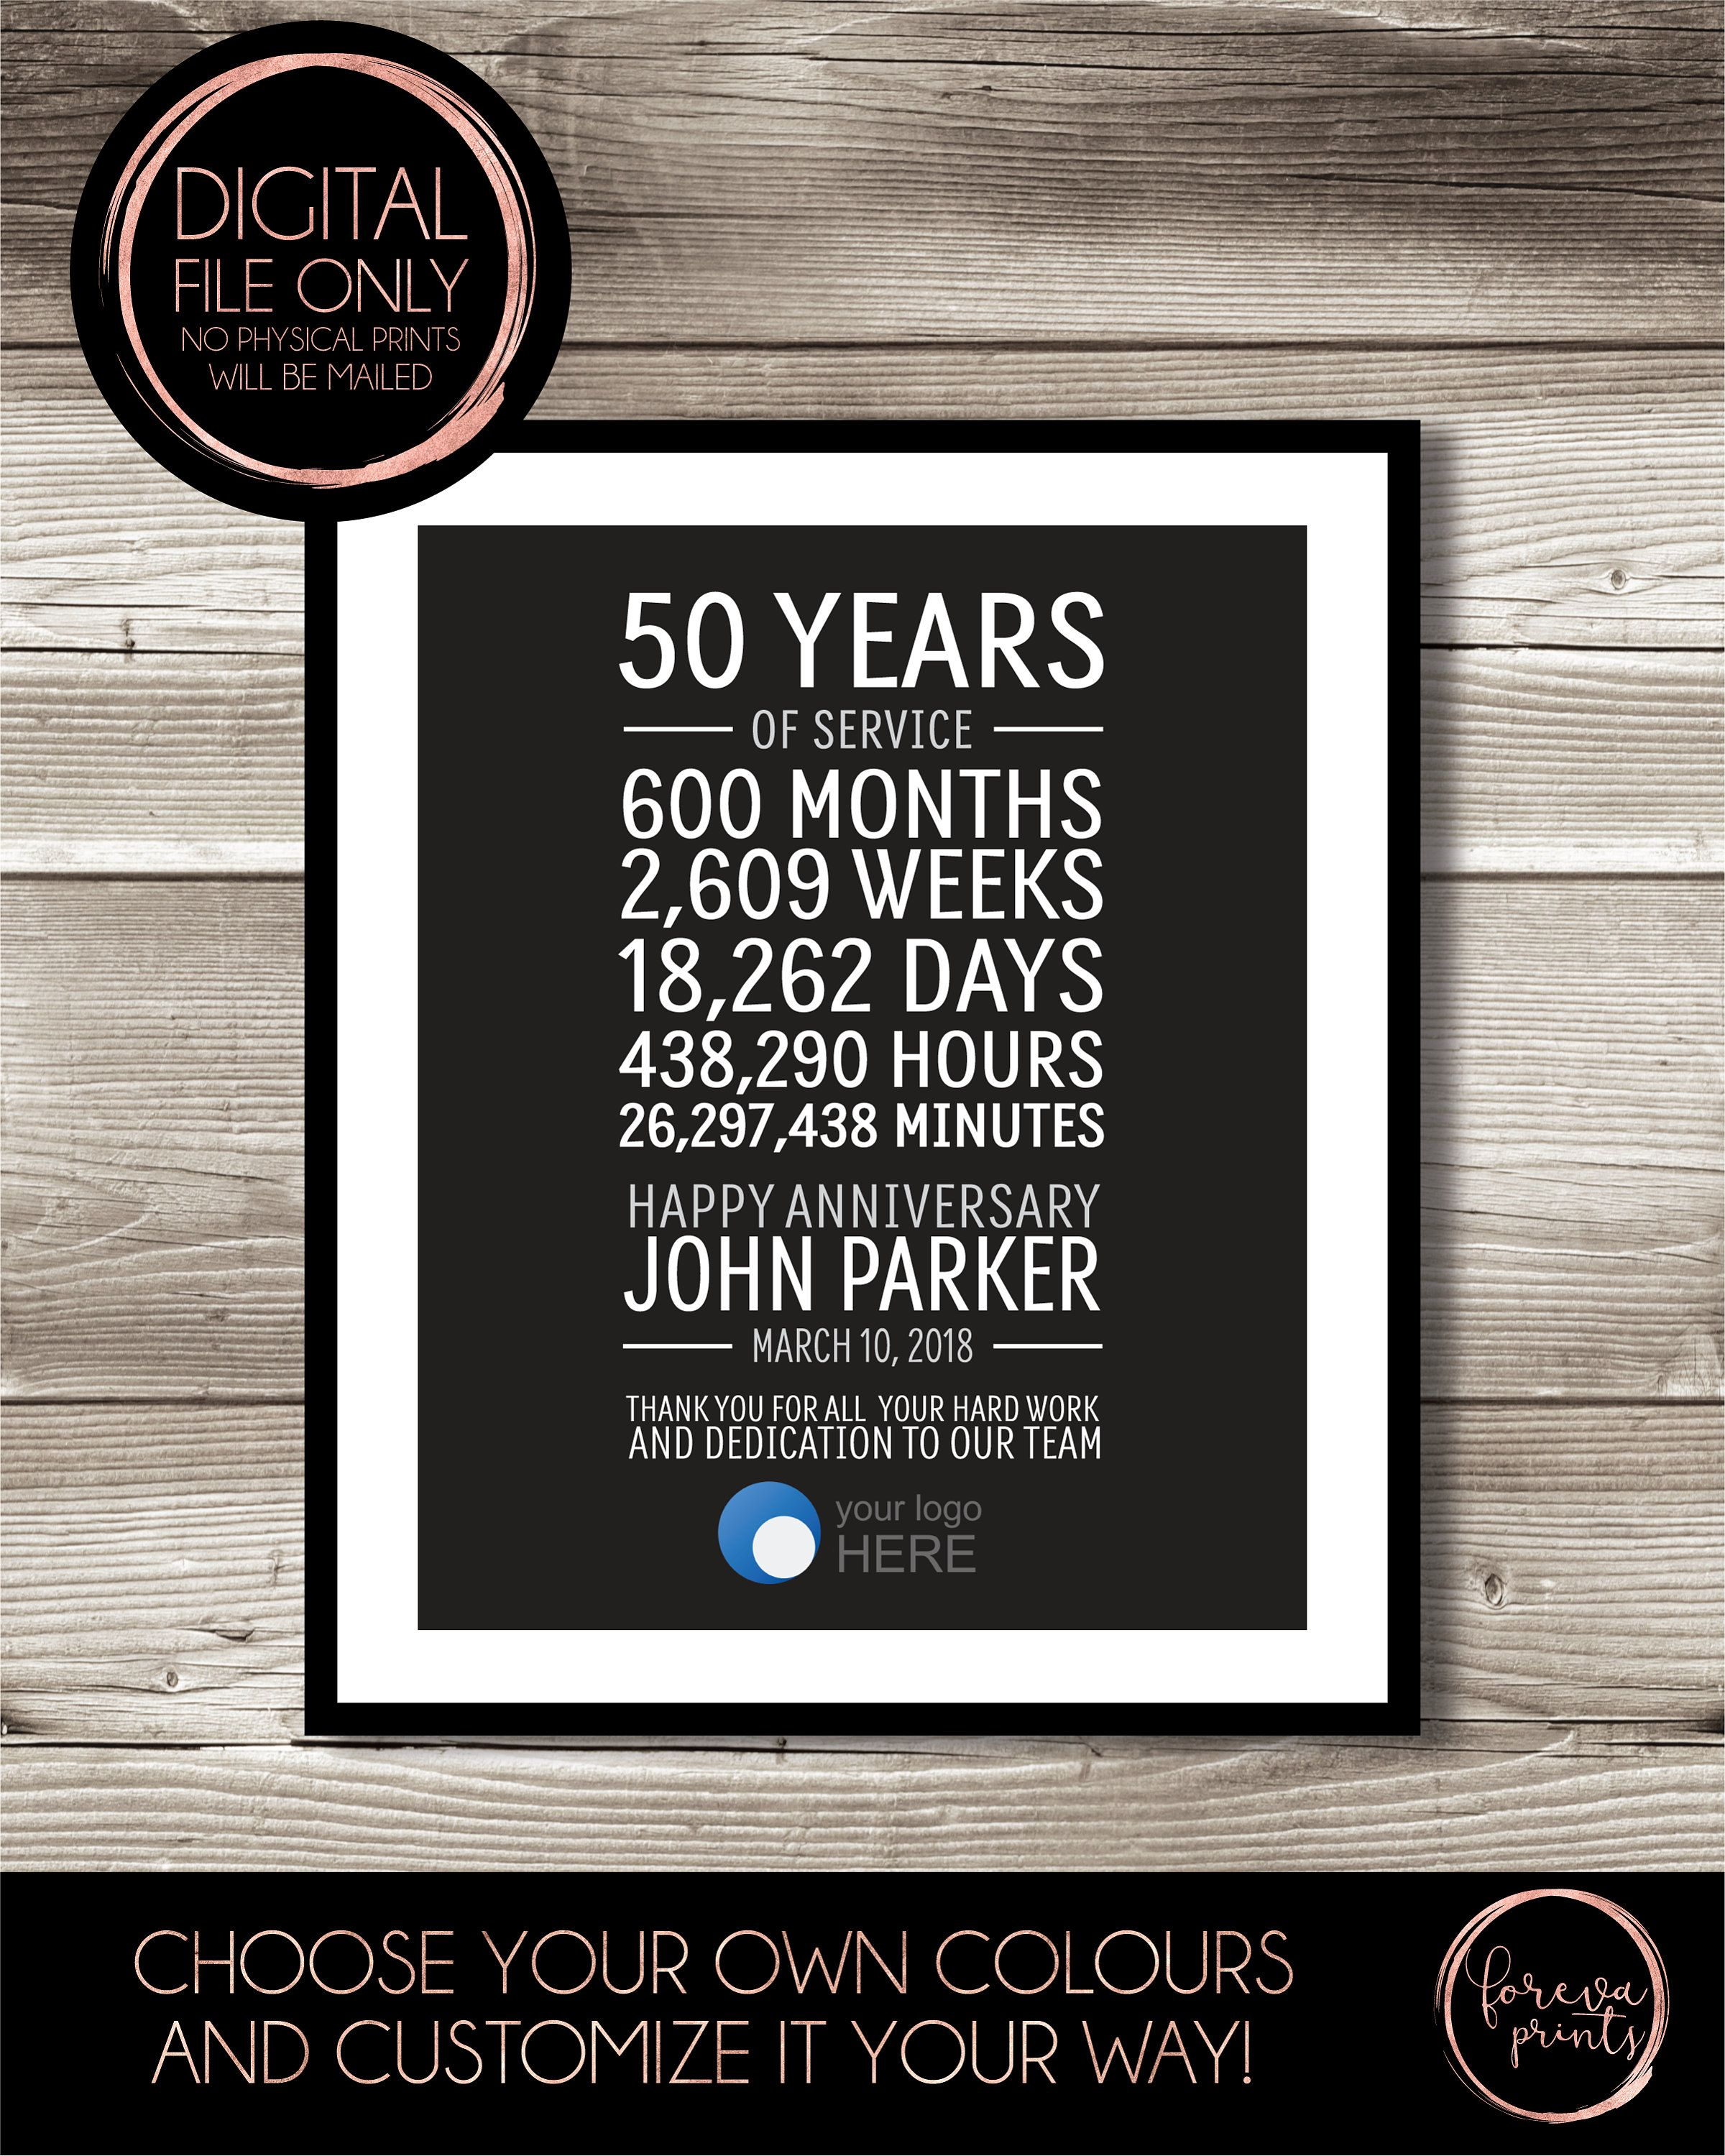 50 Year Work Anniversary Print Gift Idea Customizable Thank You Gift Years Of Service Retirement Employee Recognition Appreciation Work Anniversary Work Anniversary Gifts Employee Recognition